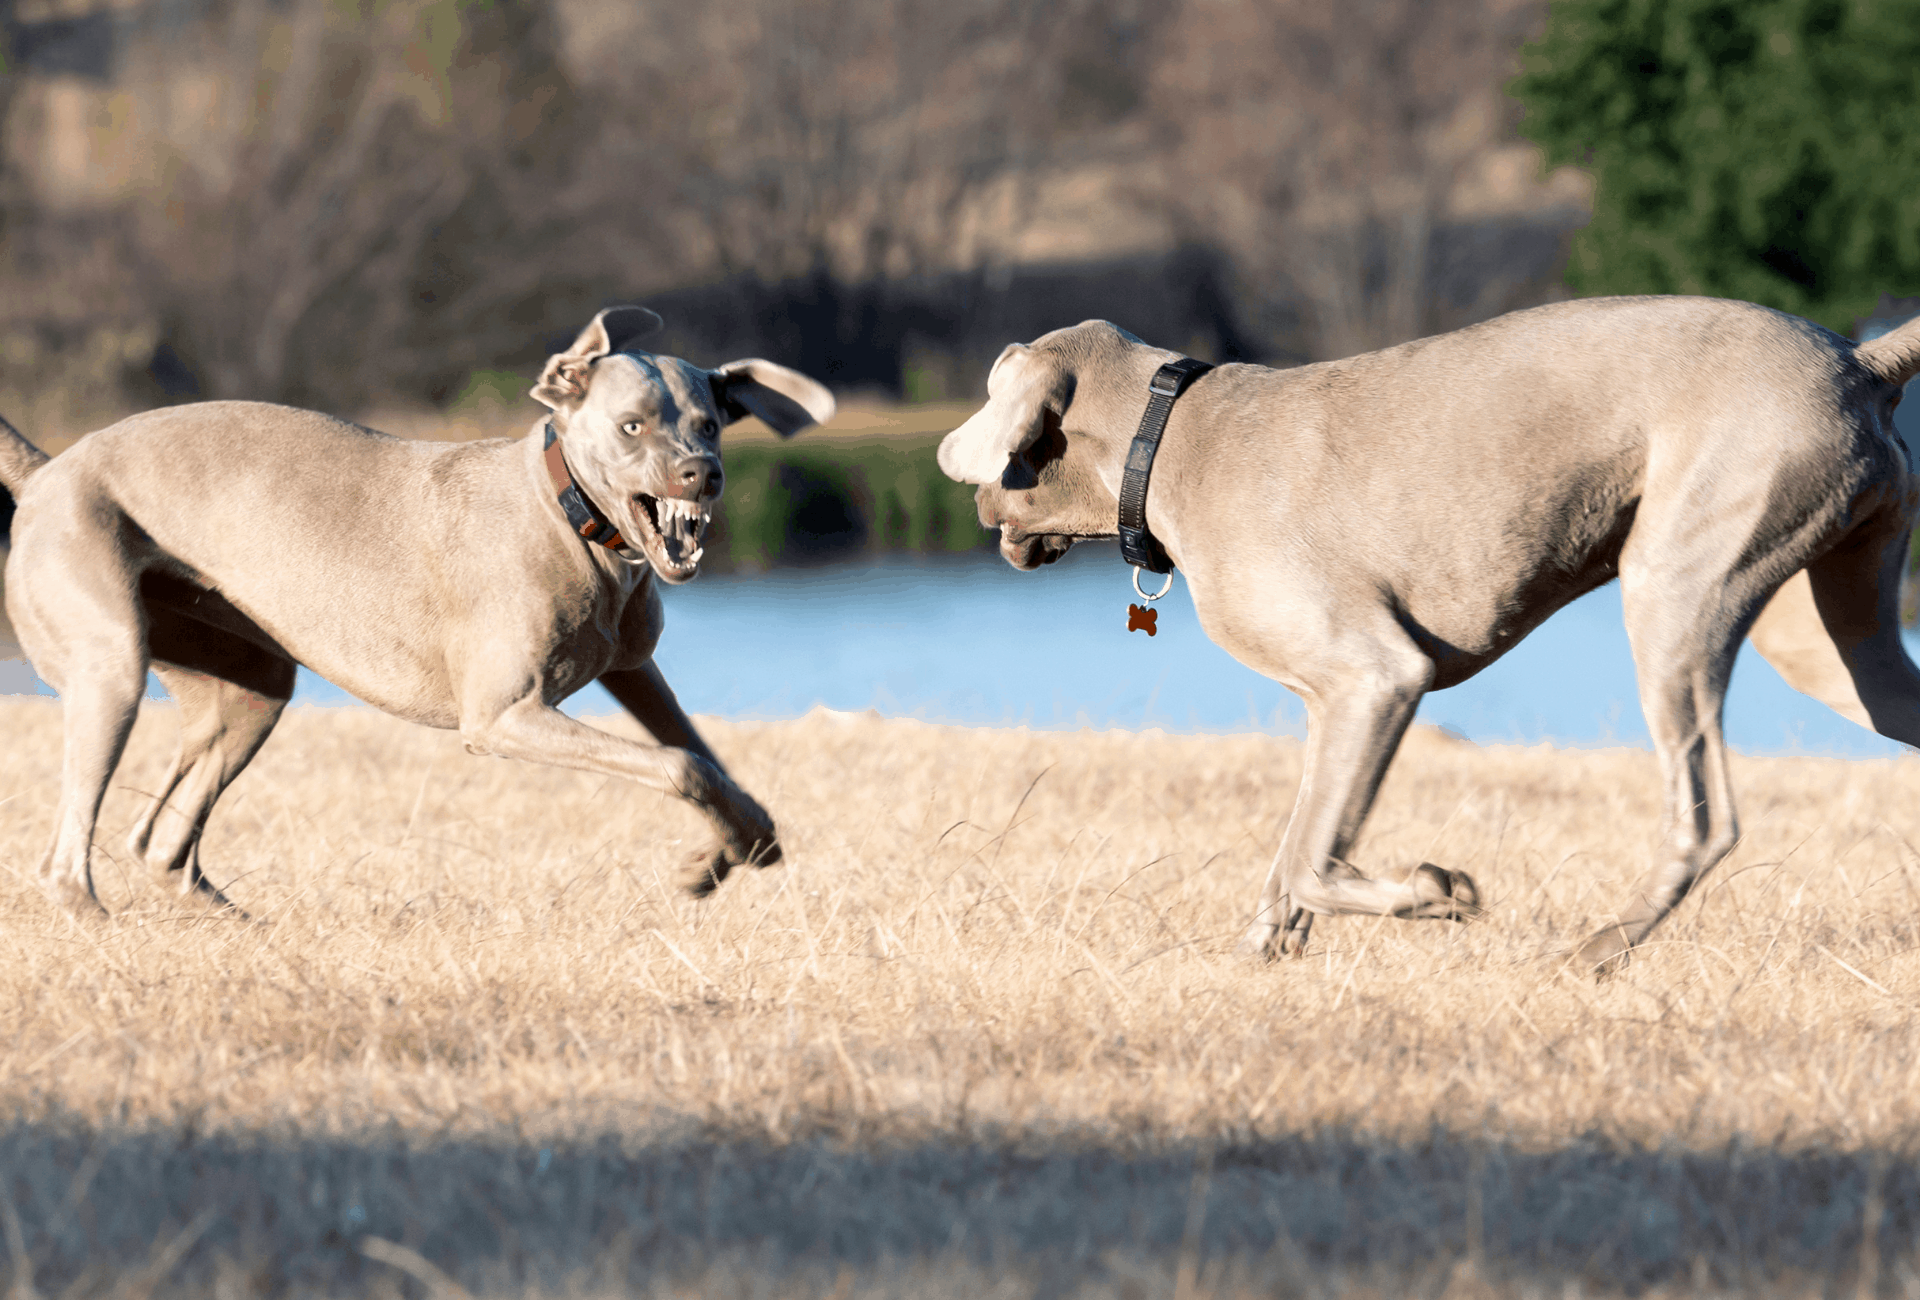 Two Weimaraners facing each other and showing teeth, about to launch into fight.